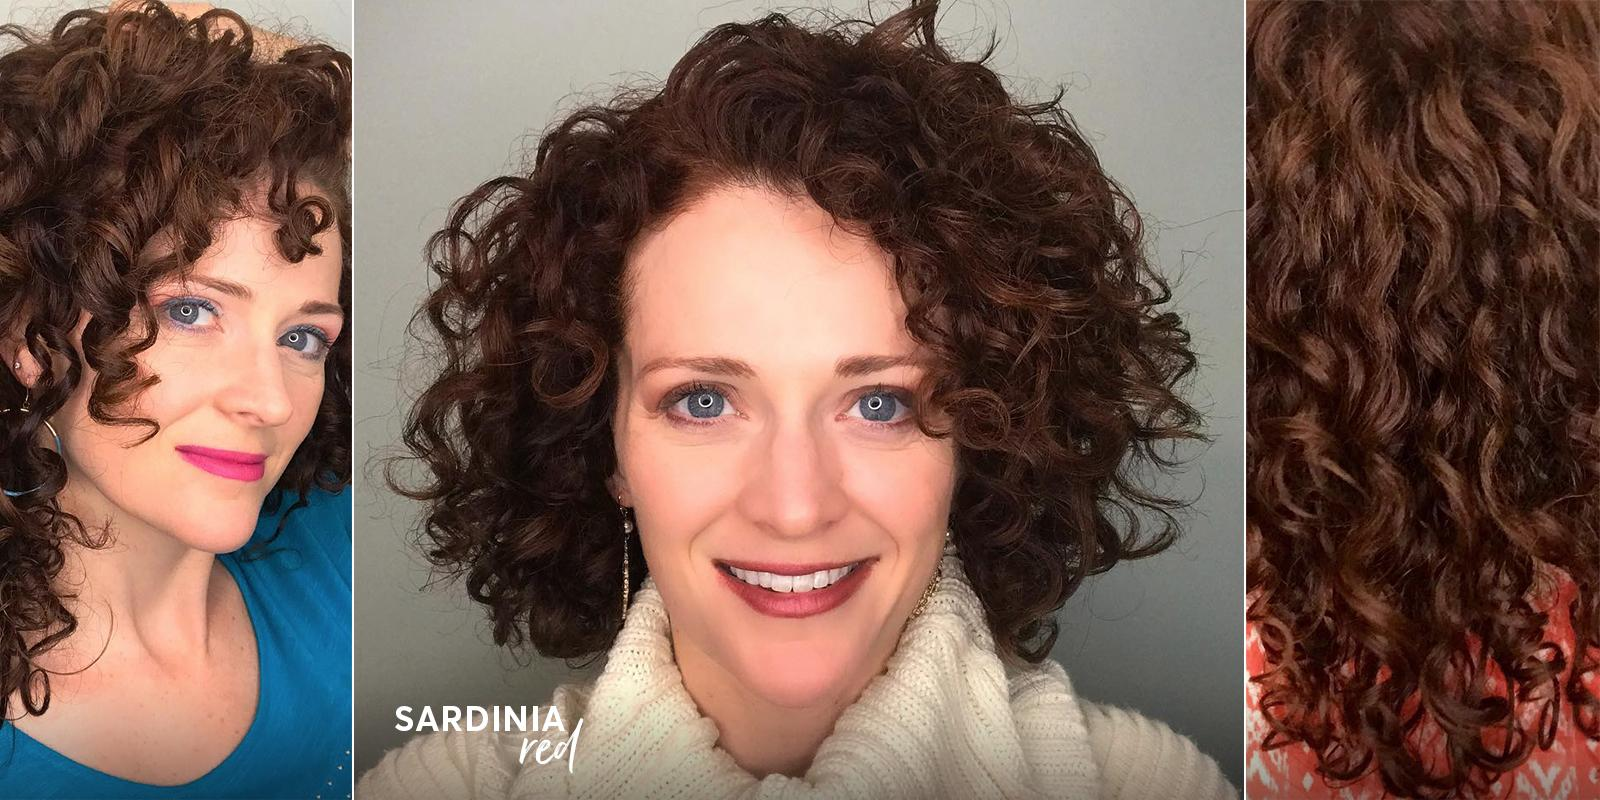 Sardinia red hair color from Madison Reed on curly haired woman